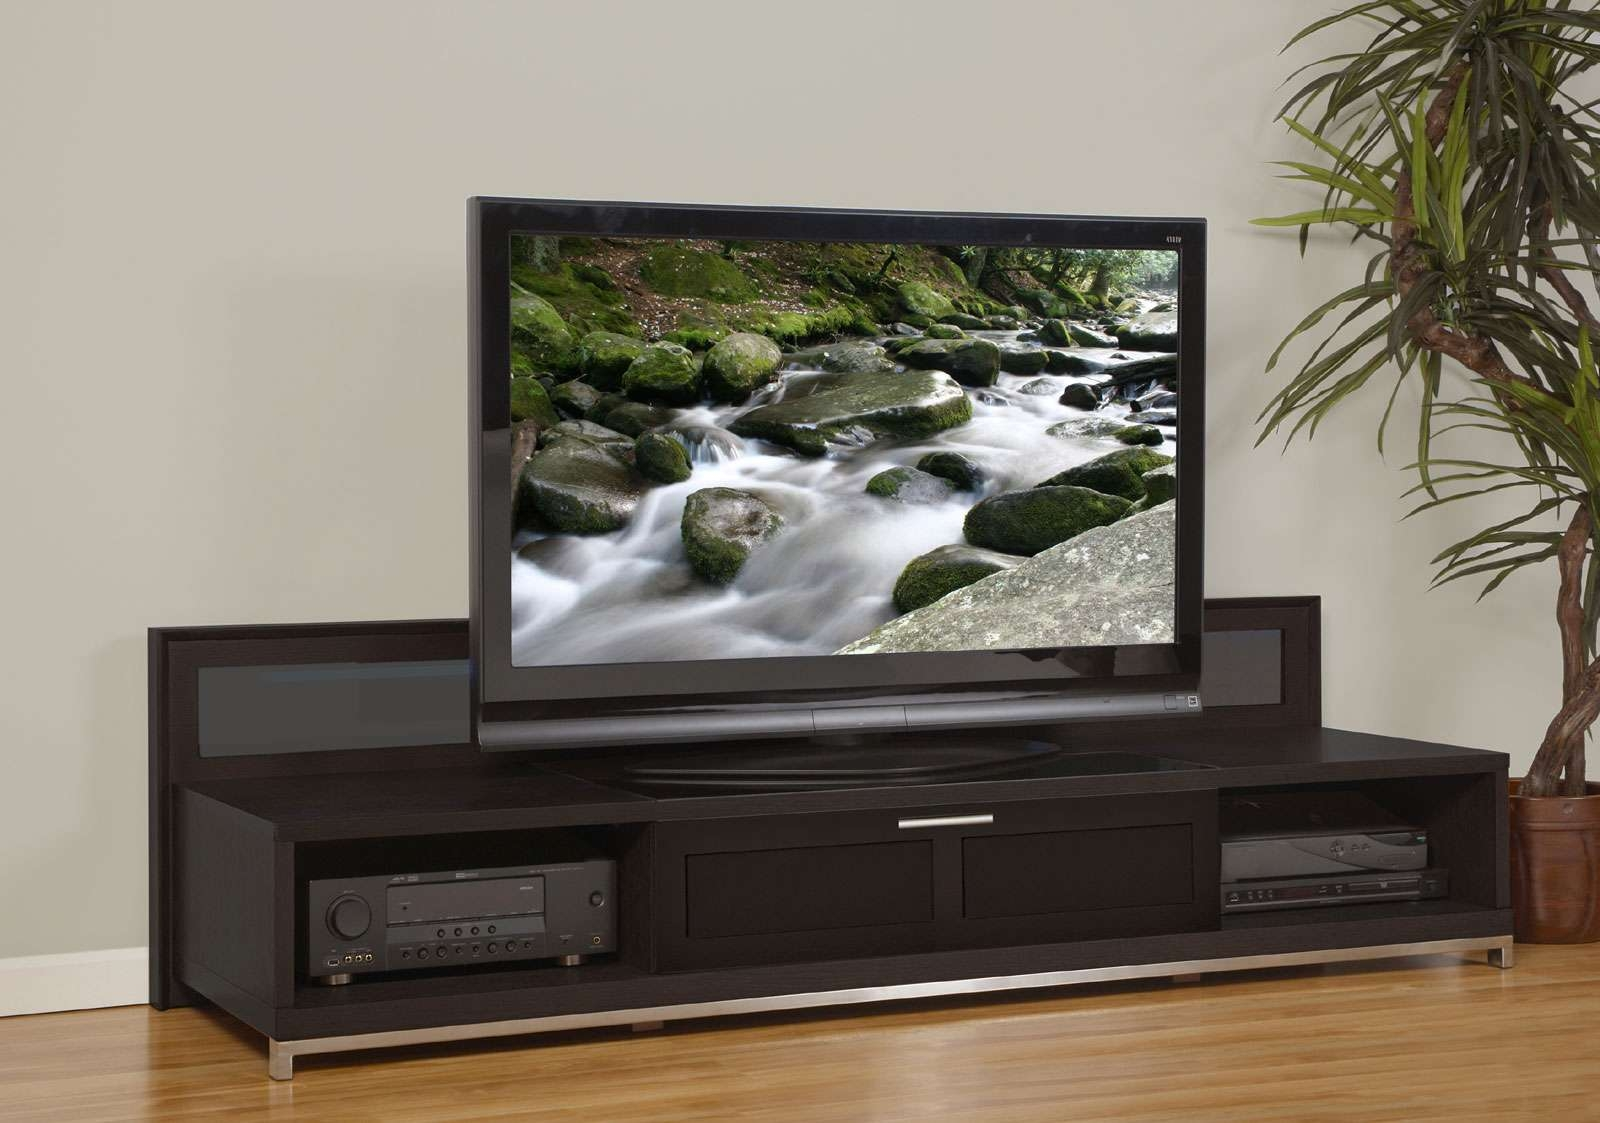 Tv Stands On A Budget Inch Flat Screens Collection Ideas Corner Intended For Corner Tv Stands For 60 Inch Flat Screens (View 15 of 15)